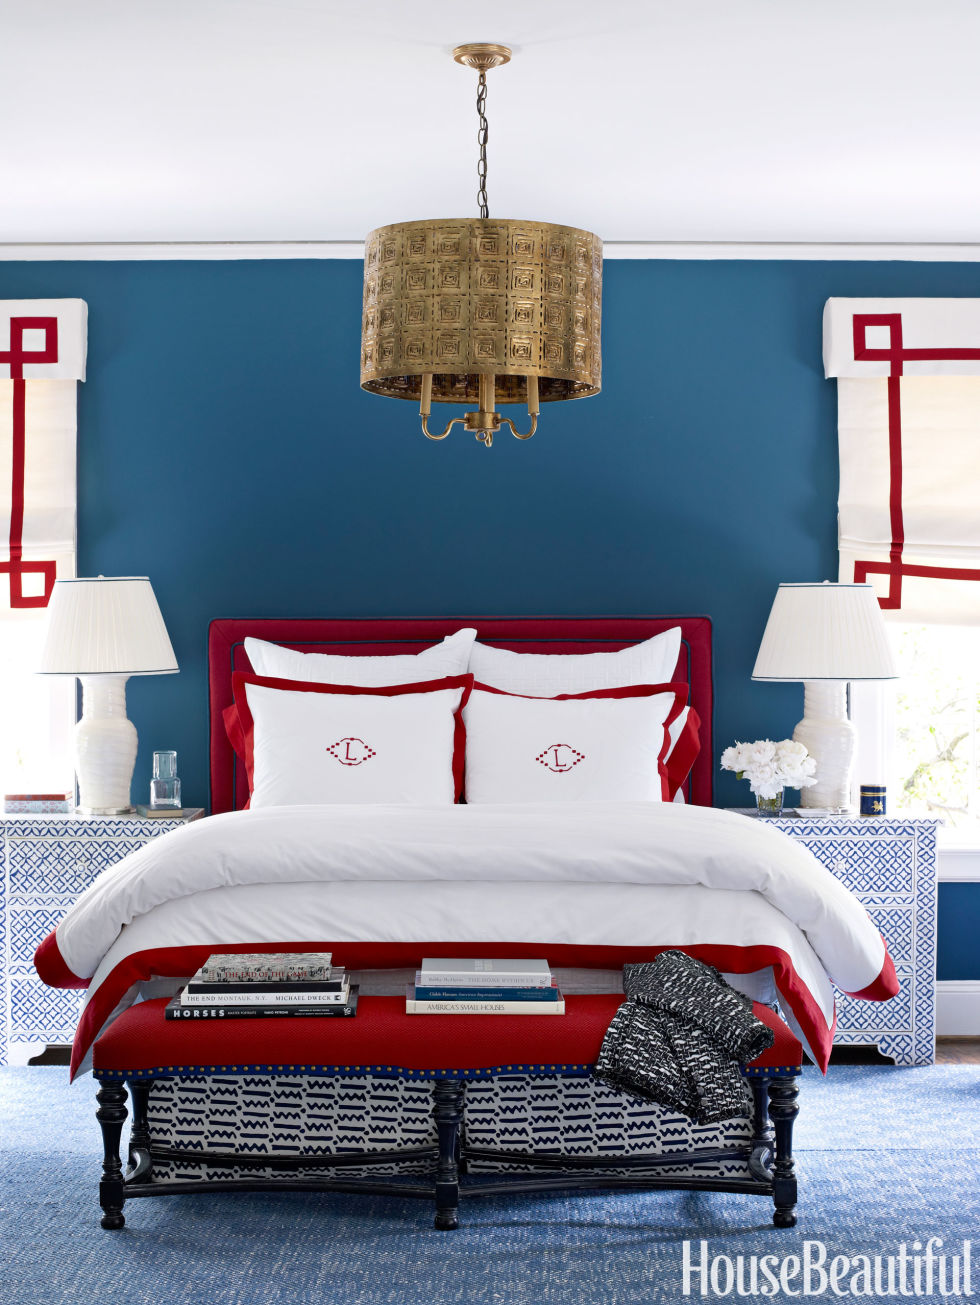 Bedroom colors blue and red - Patriotic Decor For 4th Of July Red White And Blue Decorating Ideas